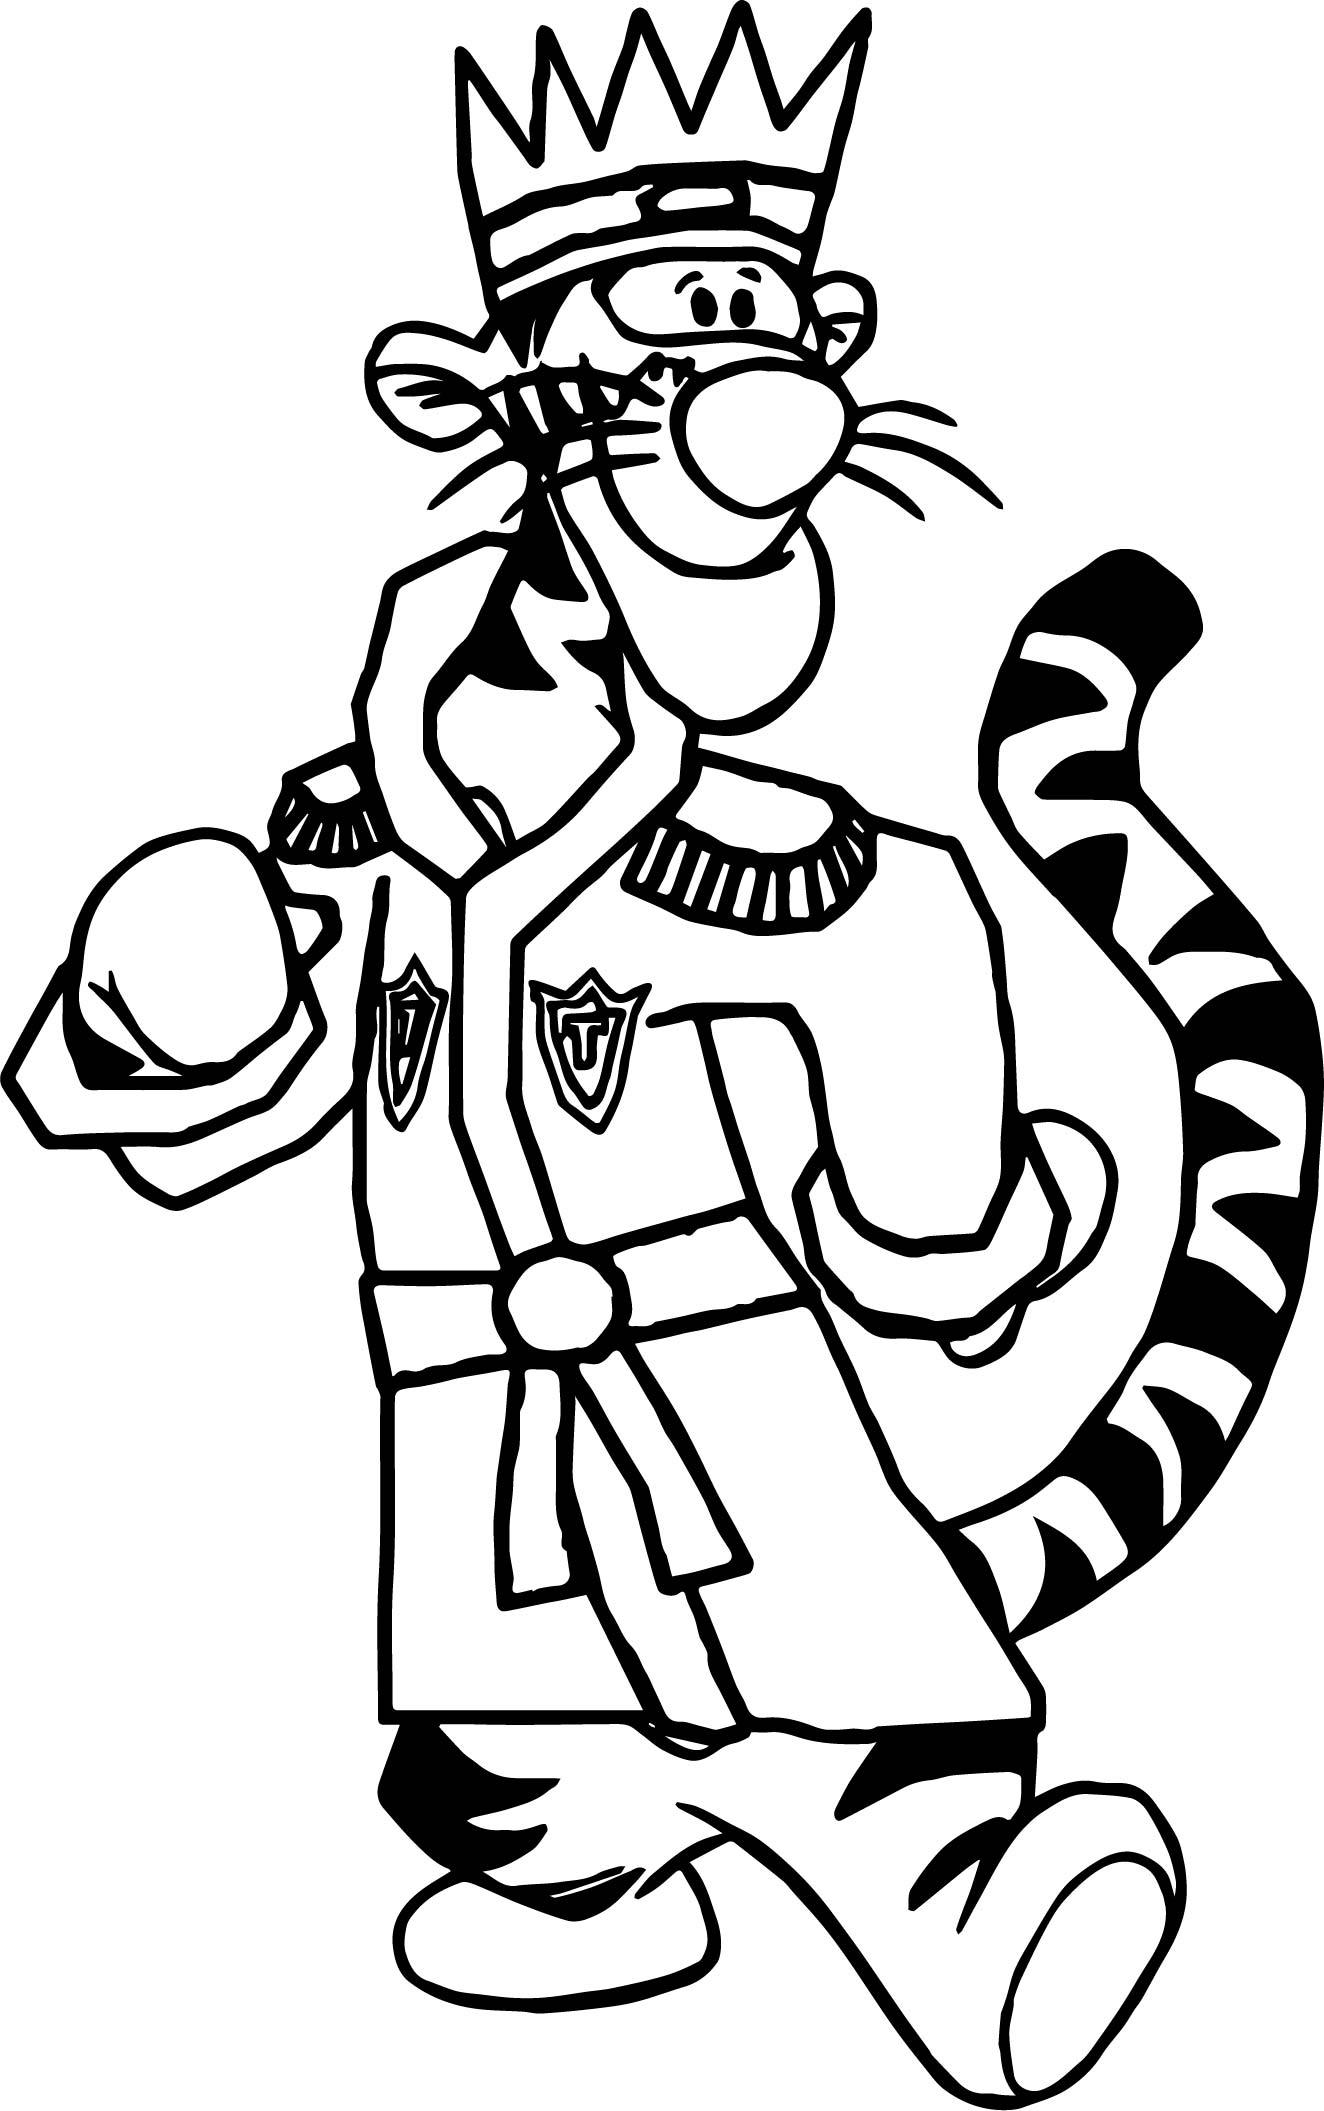 tigger and pooh coloring pages - king tigger coloring page